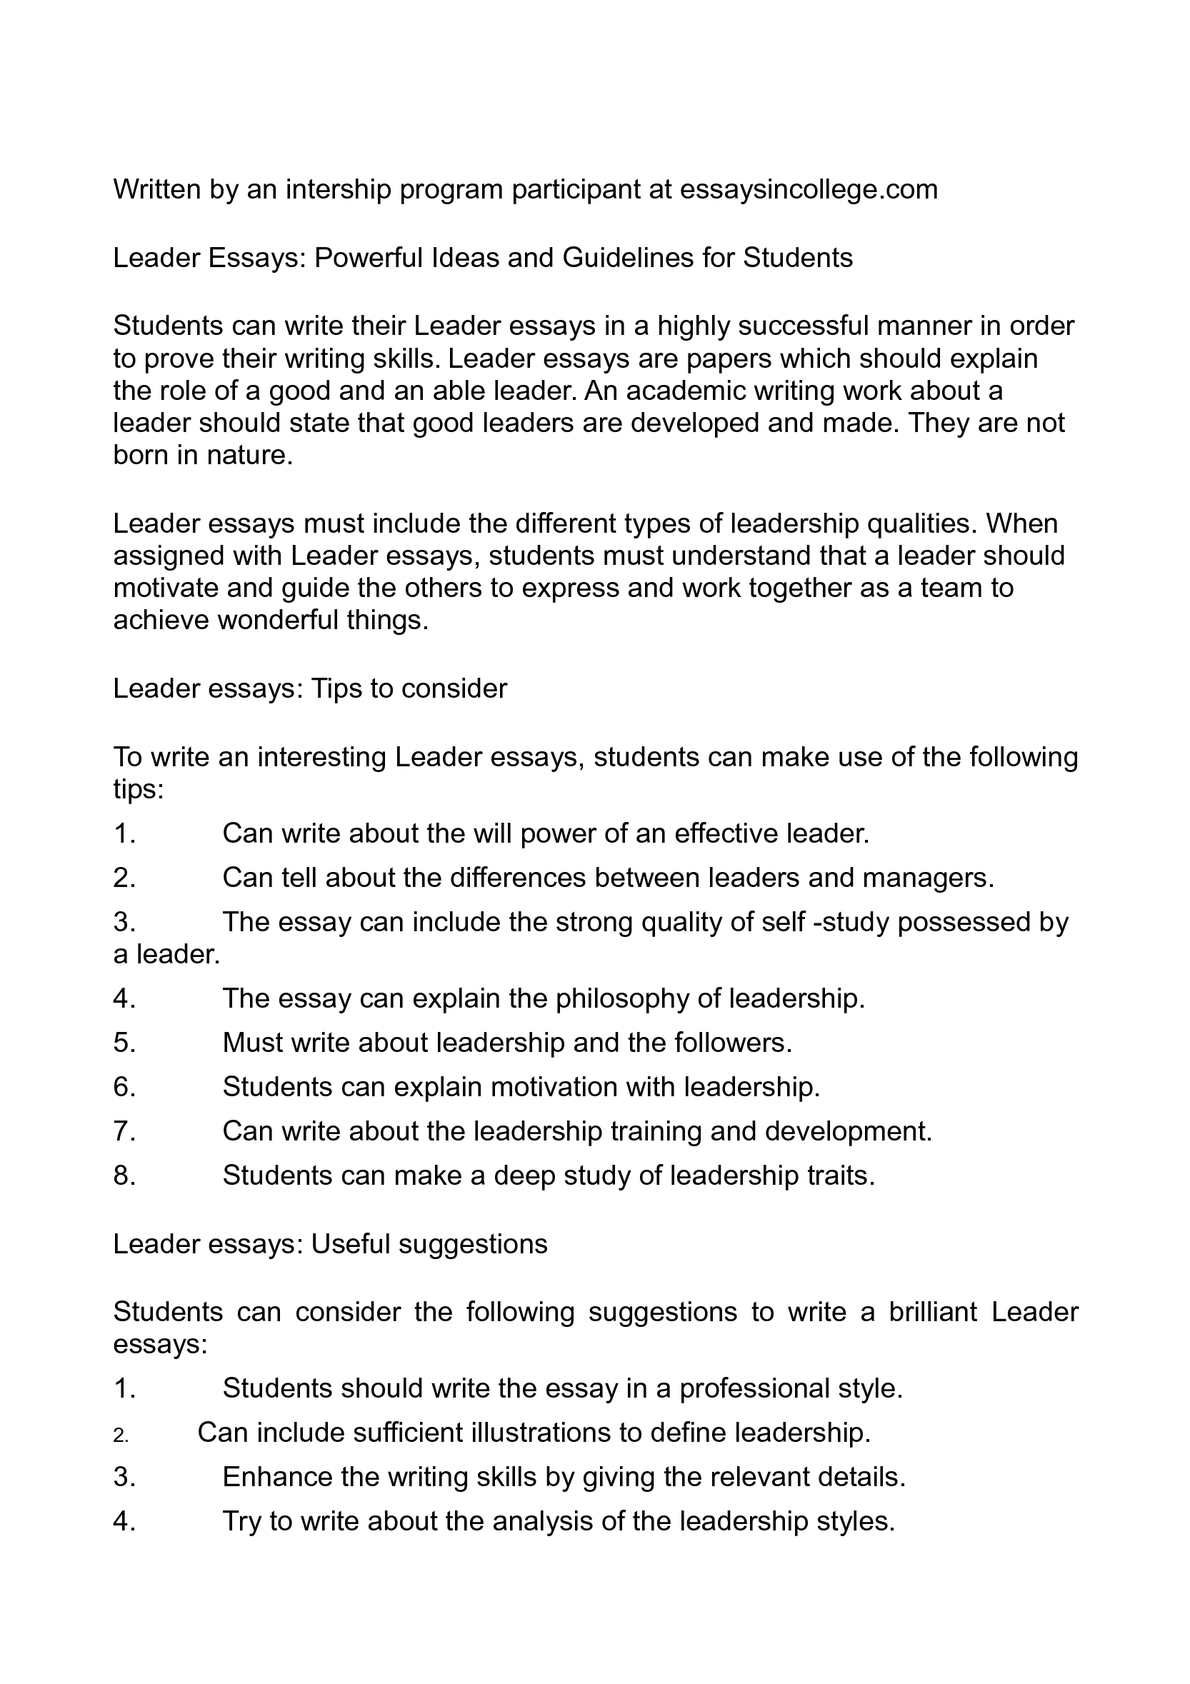 007 Leader Essays Powerful Ideas And Guidelines For Studen Essay On Leadership Students Qualities Sensational In Telugu With Examples Full